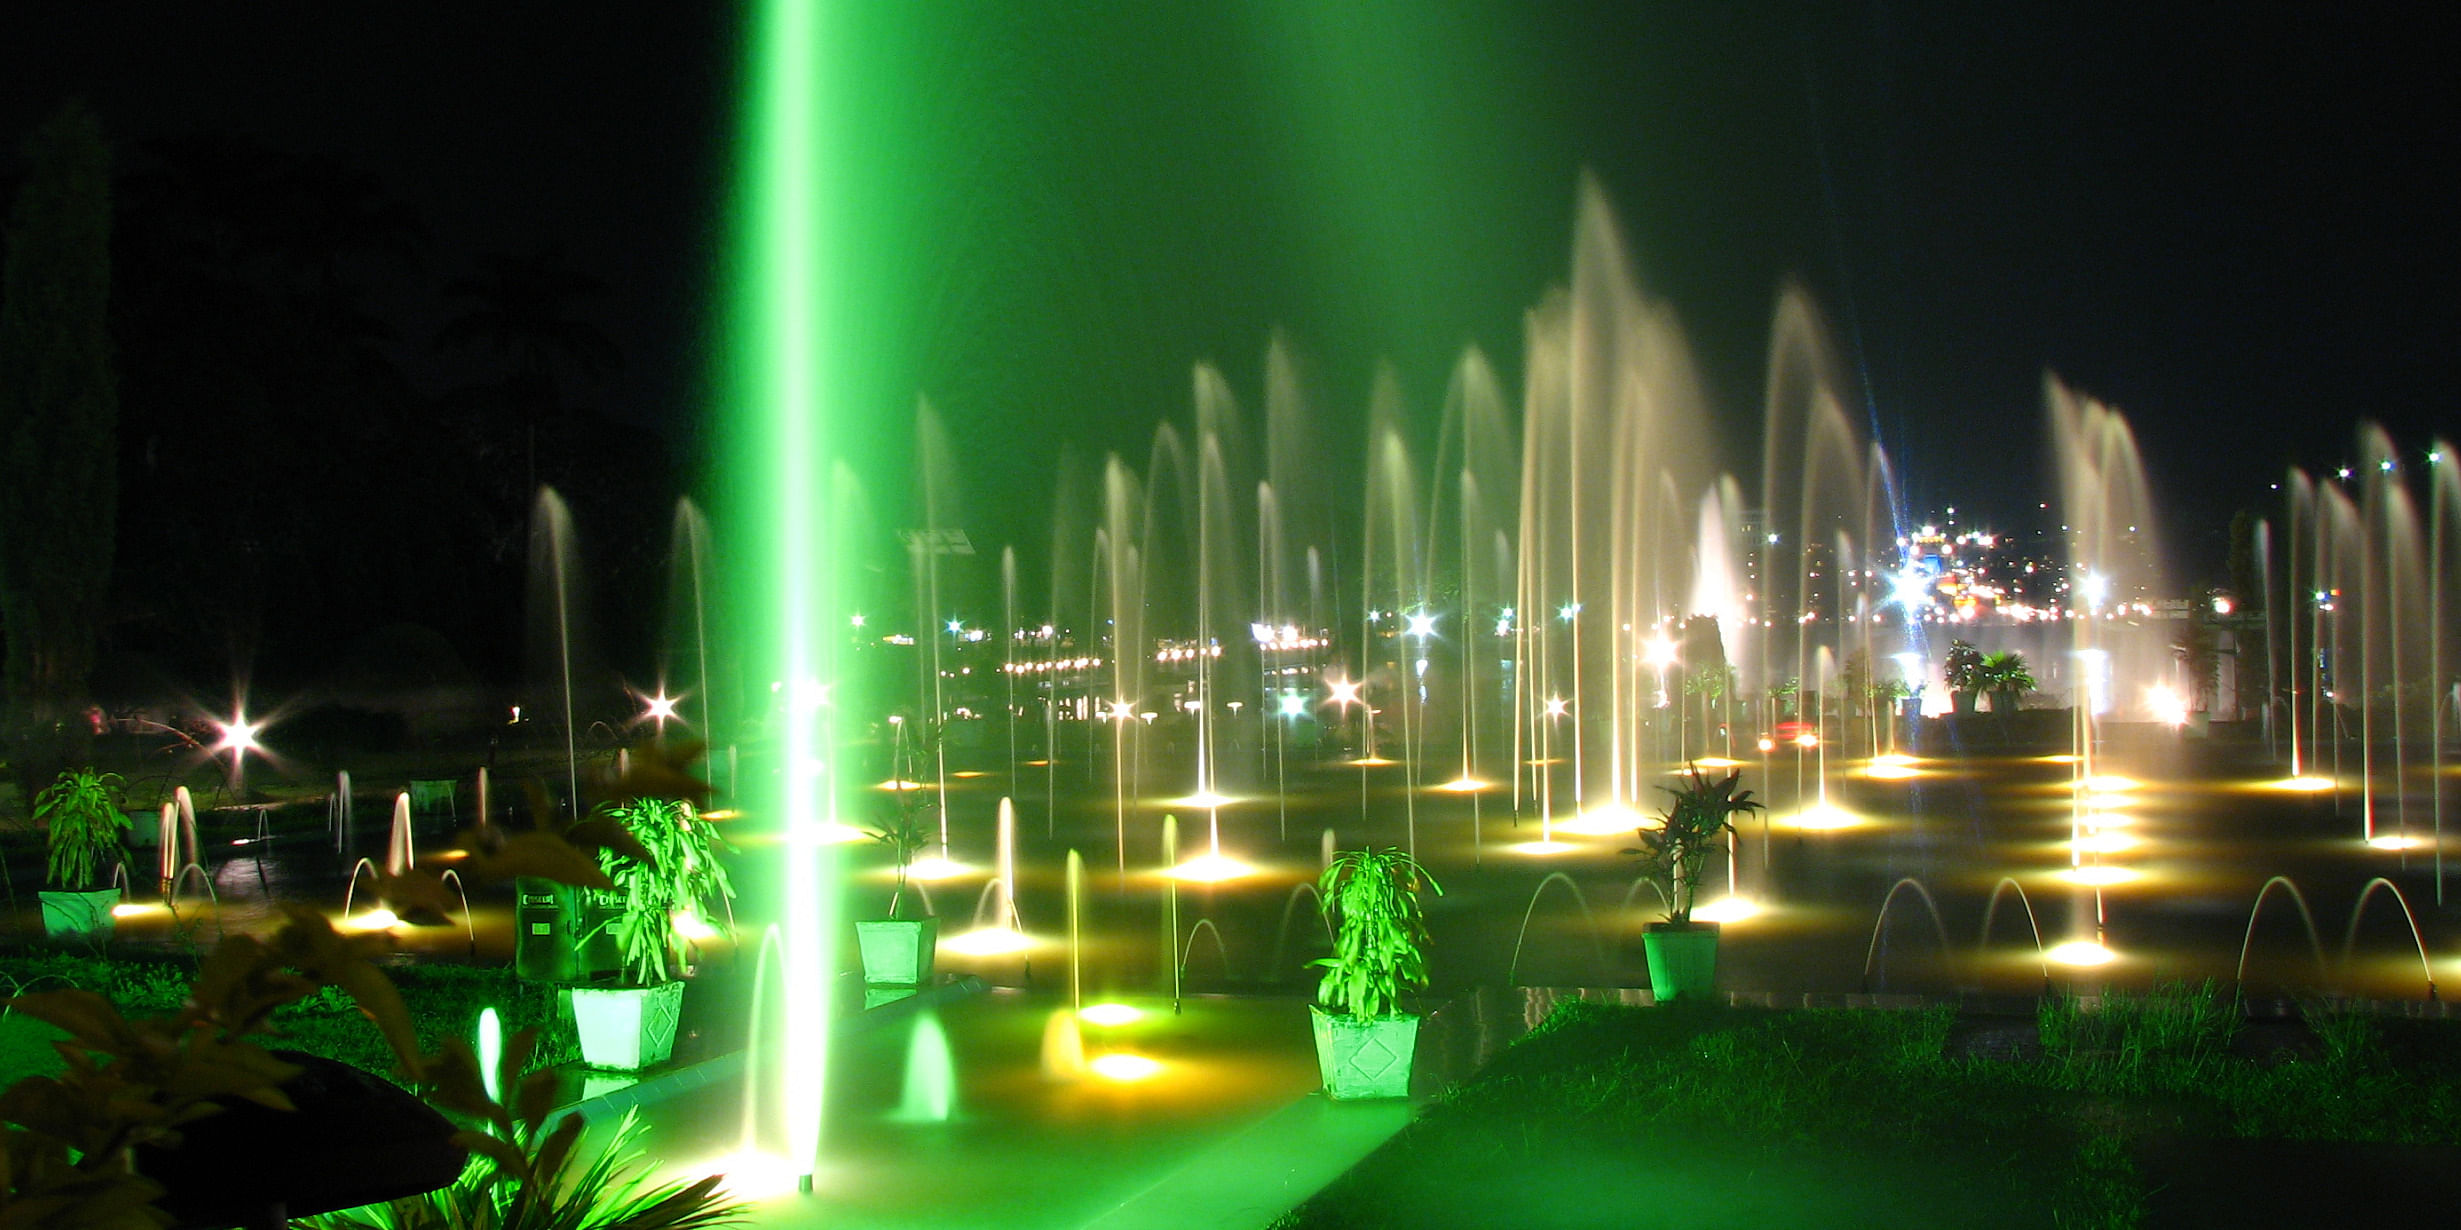 Image Source: https://upload.wikimedia.org/wikipedia/commons/a/a6/Brindavan_Garden_Fountains_in_Night.jpg